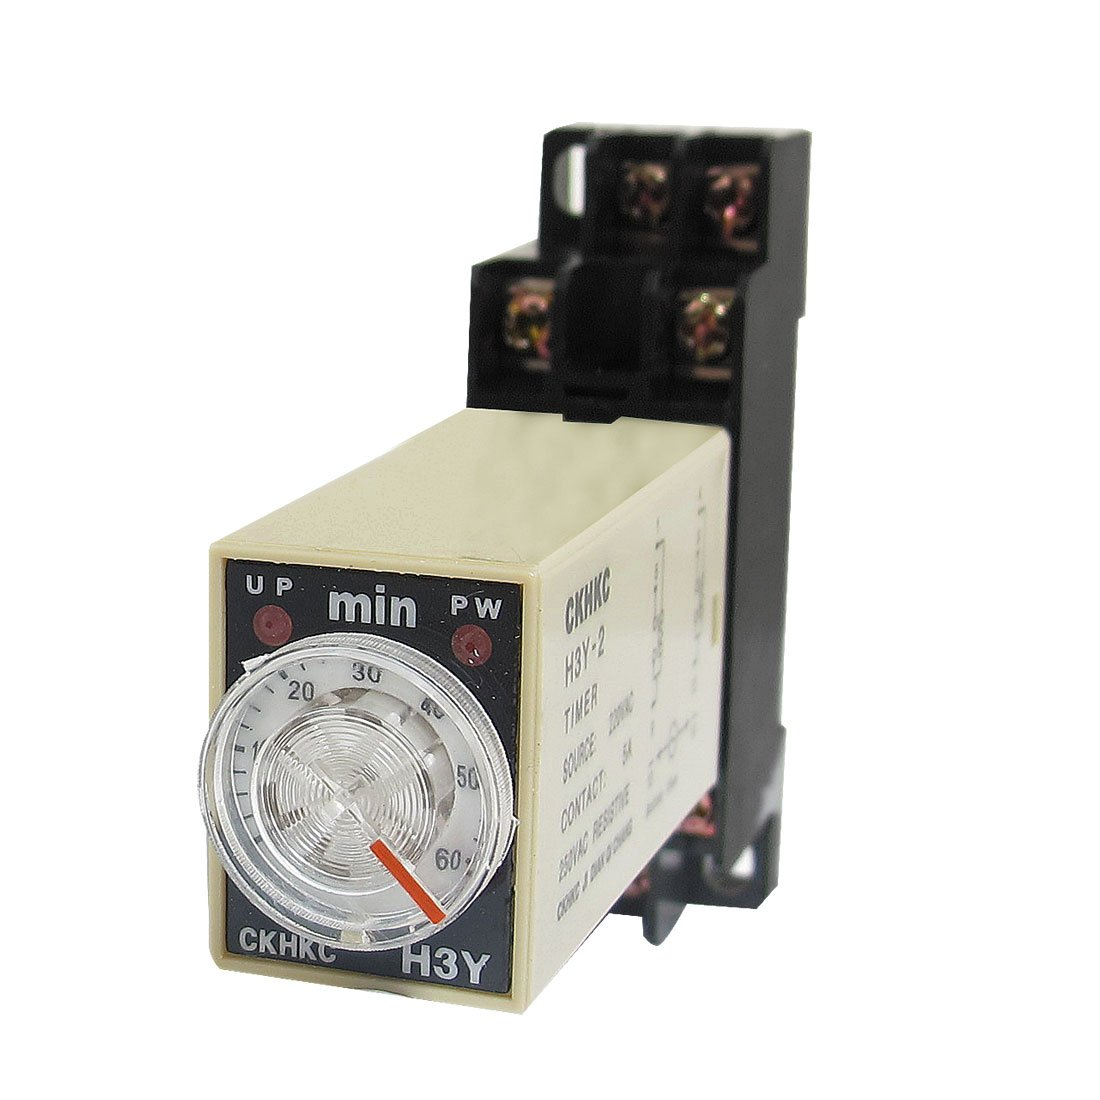 uxcell H3Y-2 220VAC DPDT 60 Minutes 60Min 8P Terminals Delay Timer Time Relay w Base a12121800ux0135